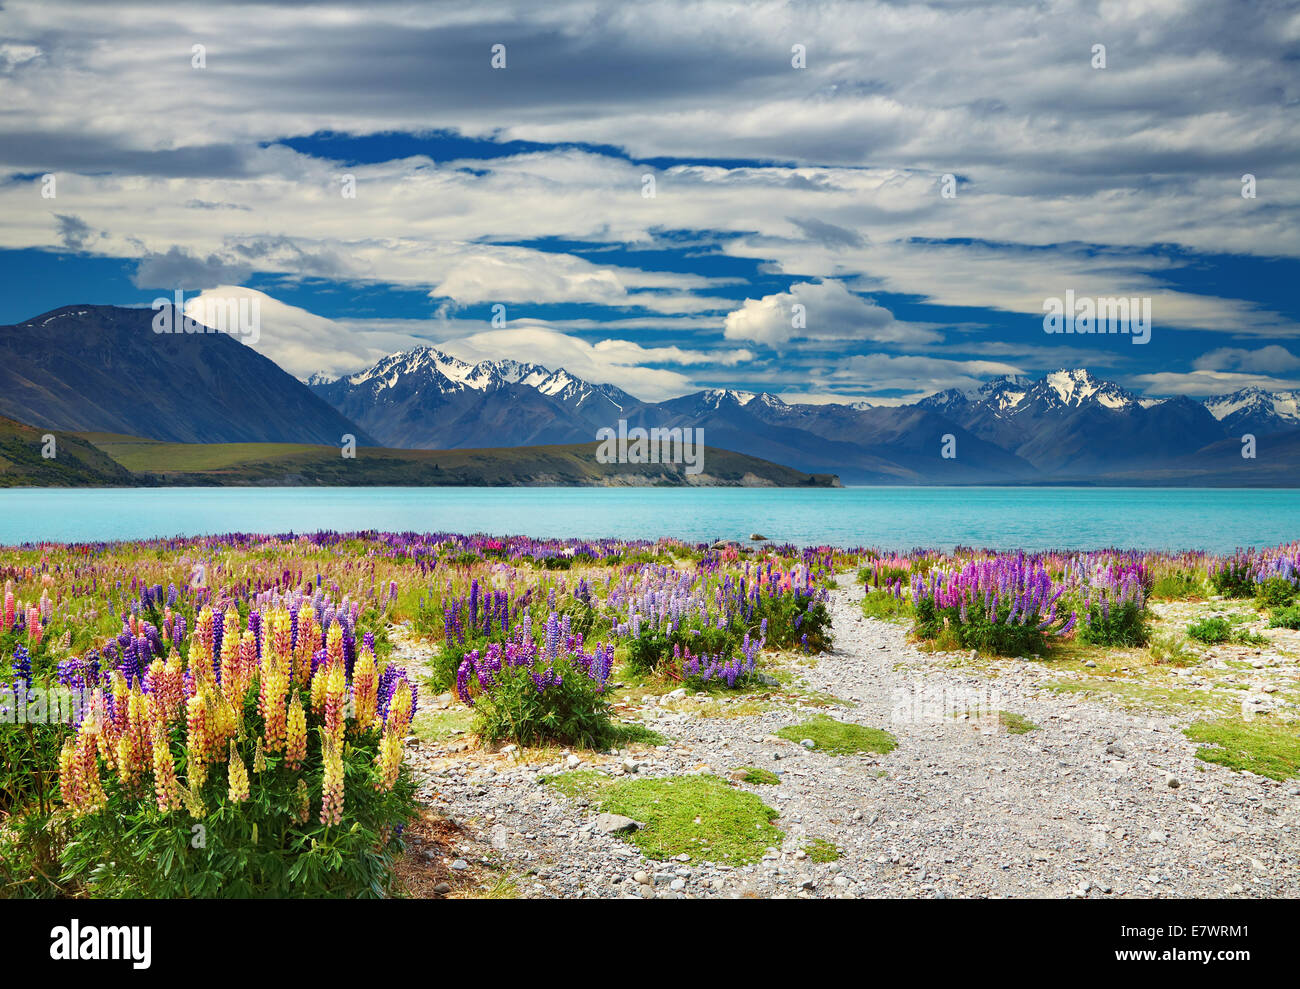 Lake Tekapo, Southern Alps, New Zealand - Stock Image